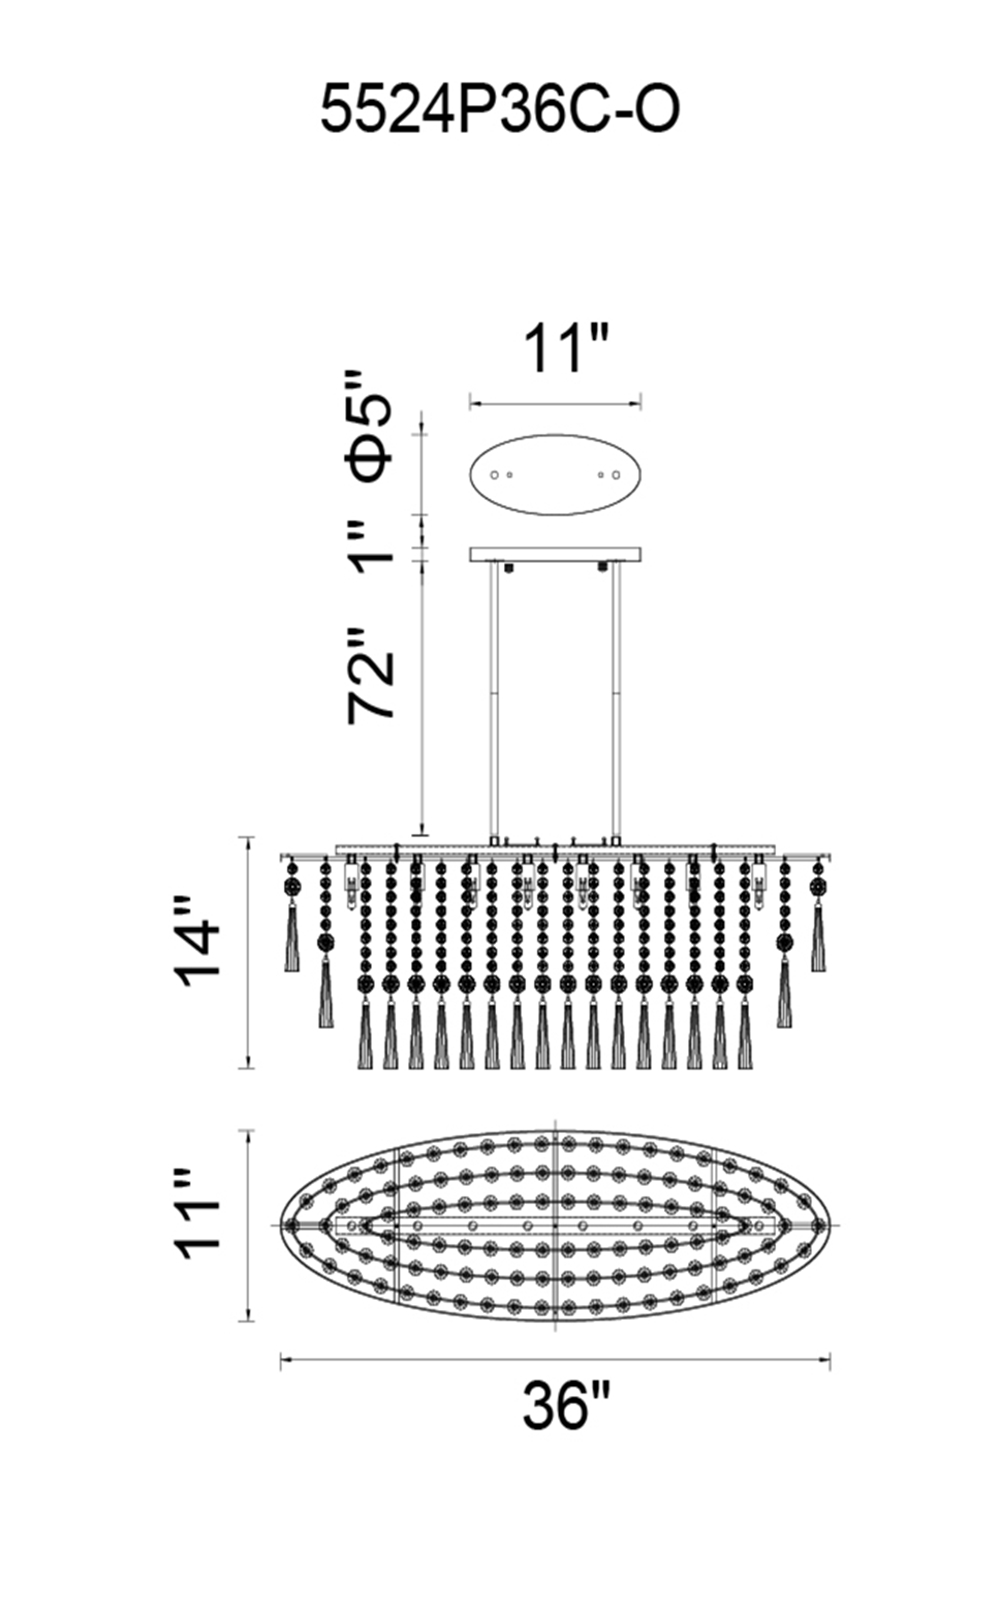 CWI Lighting Blissful 8 Light Down Chandelier With Chrome Finish Model: 5524P36C-O Line Drawing